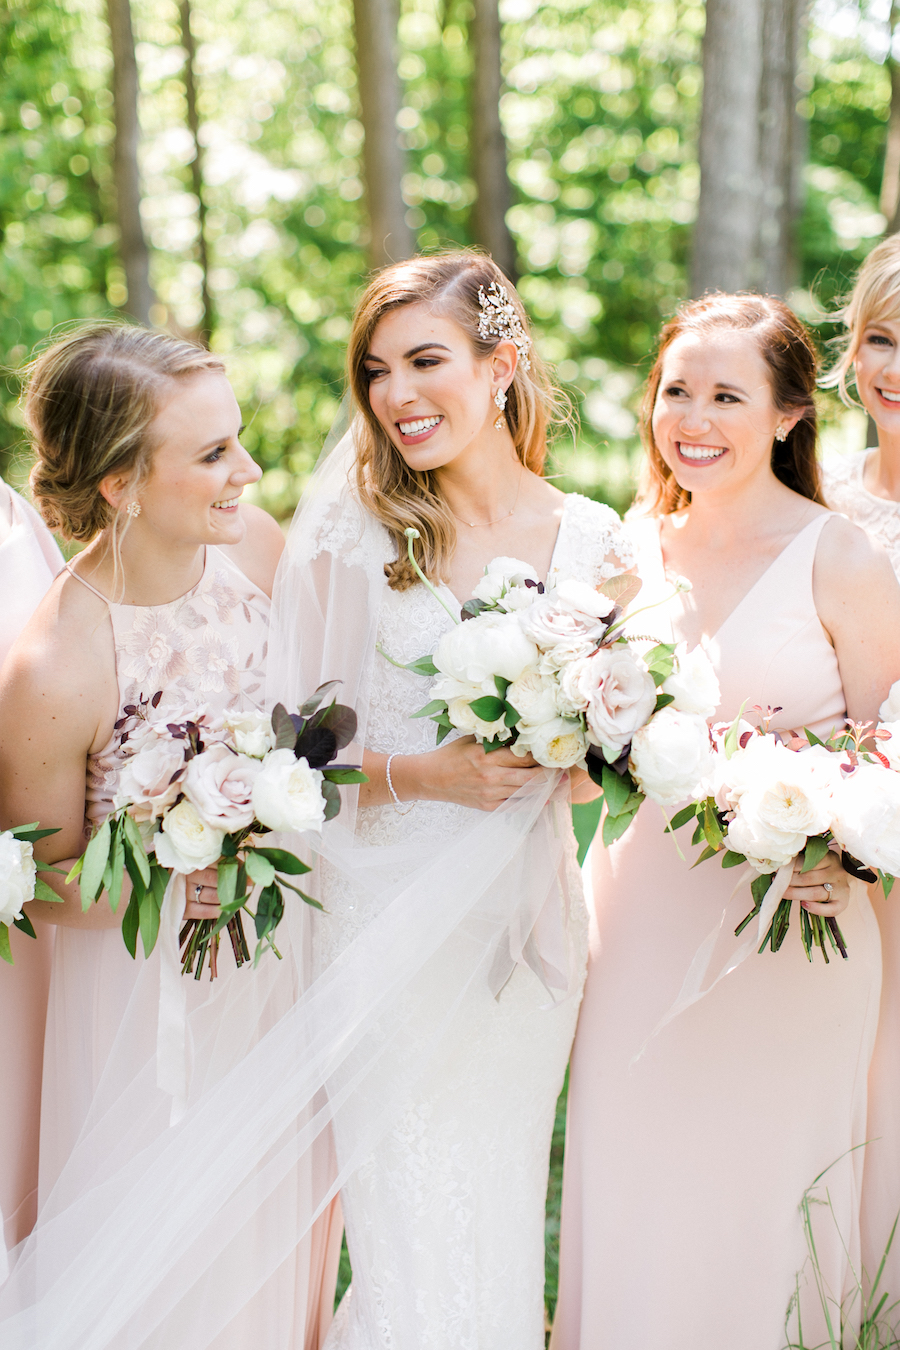 Bride and bridesmaids and their bouquets